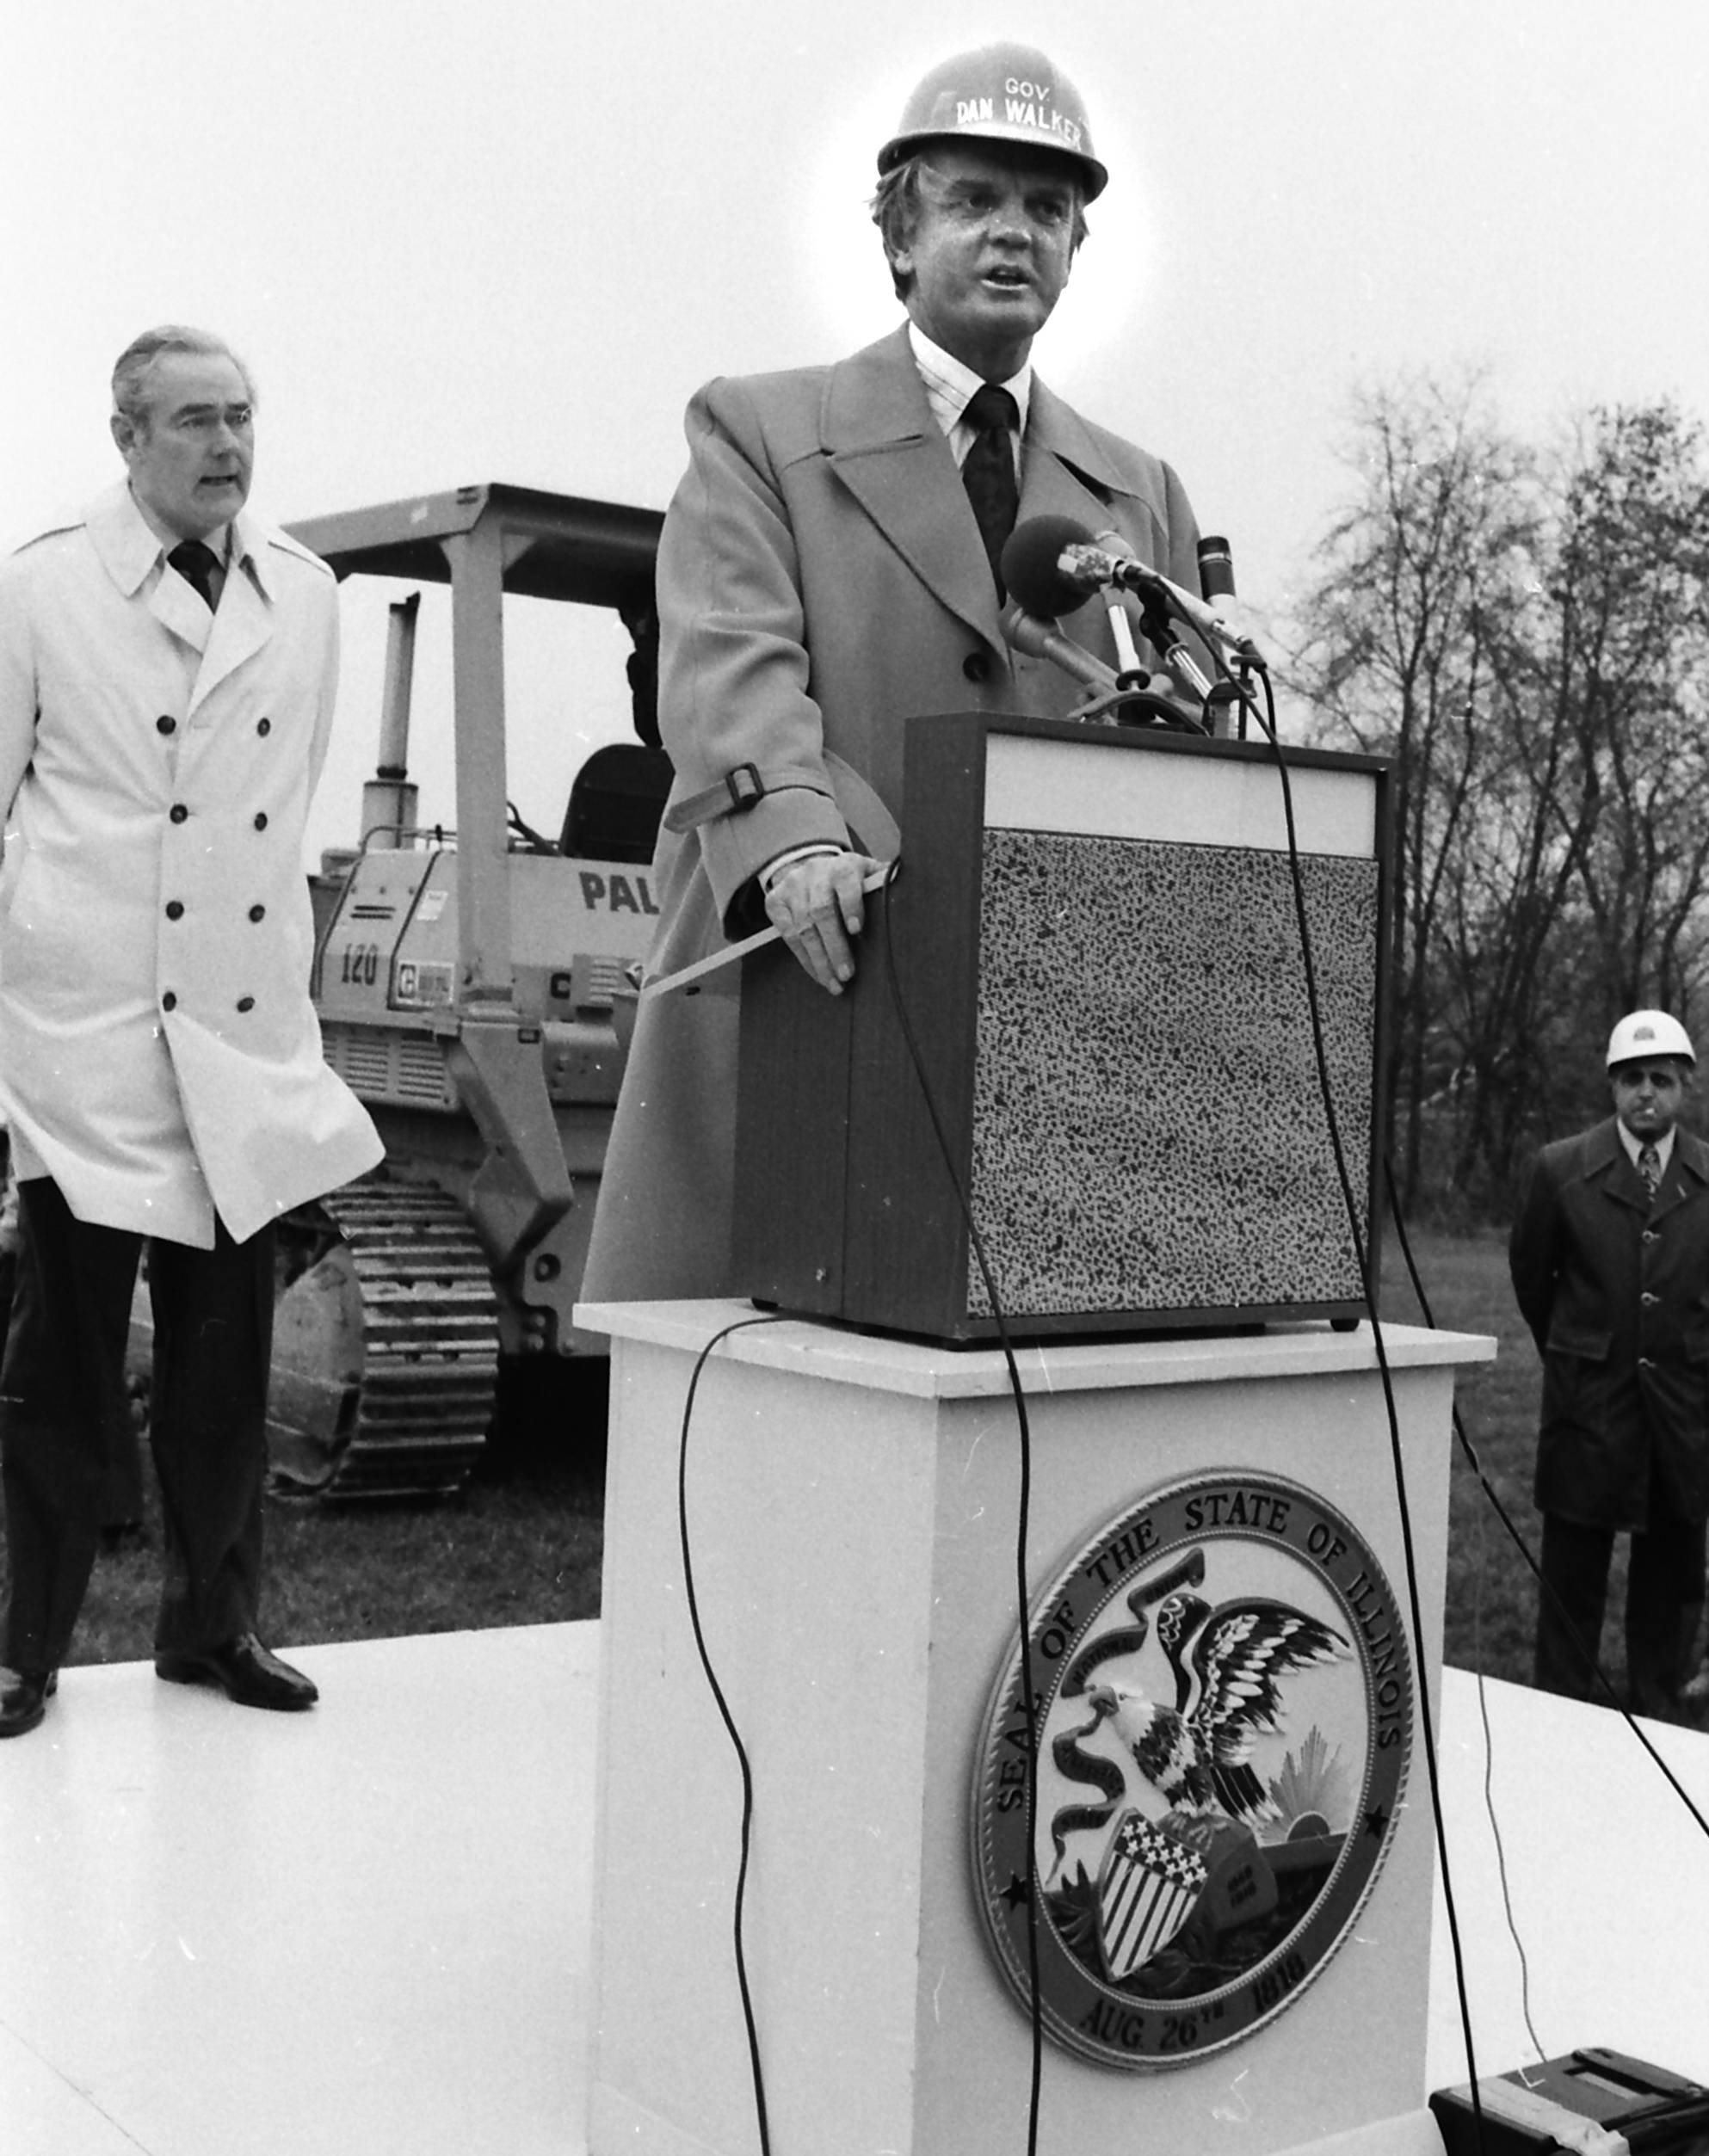 Former Illinois Governor Dan Walker at a water basin groundbreaking in Elk Grove Village.